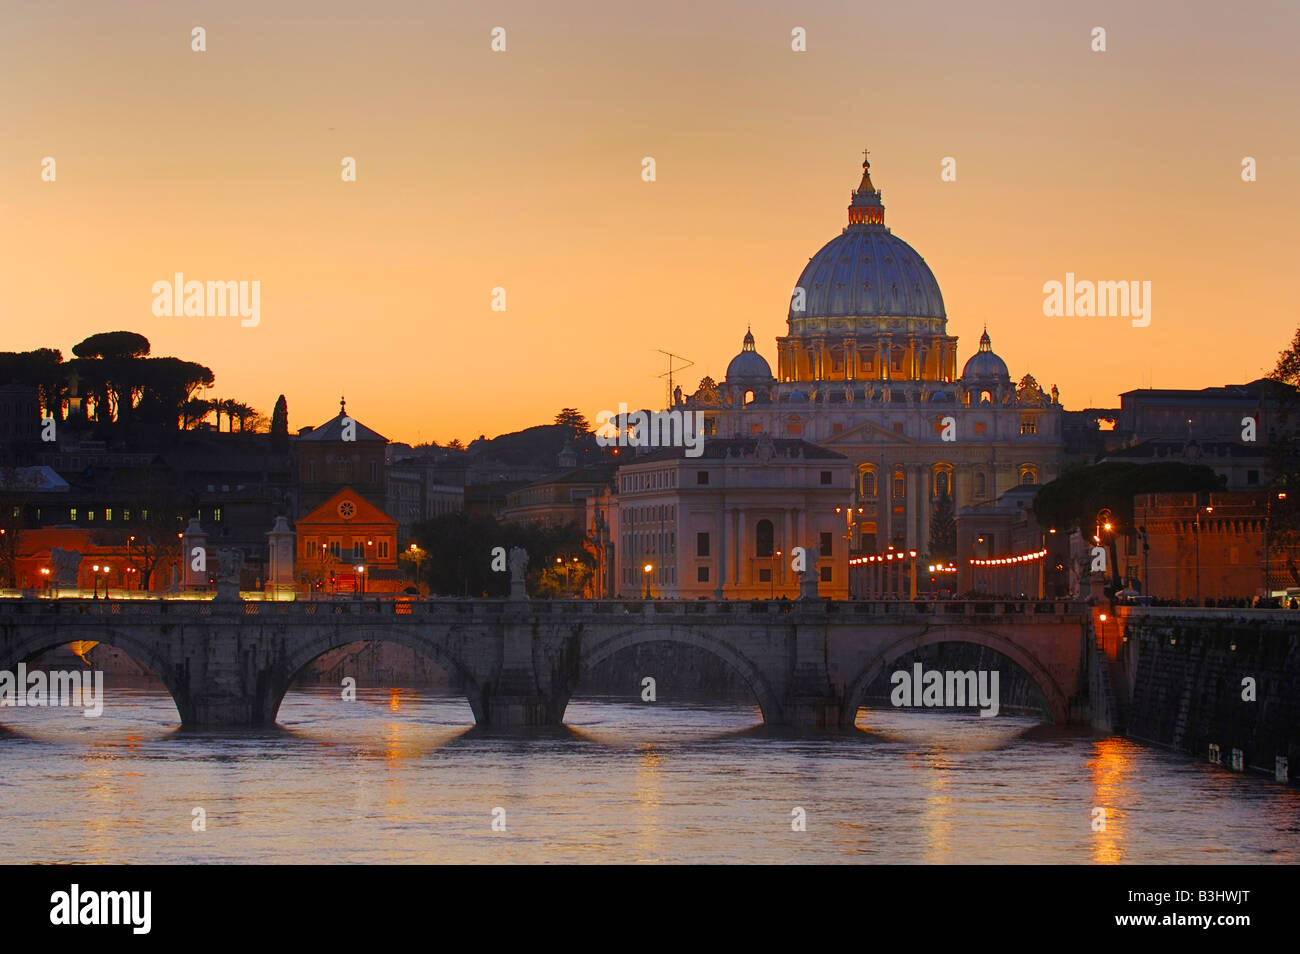 The Basilica of Saint Peter at sunset, Rome, Italy - Stock Image